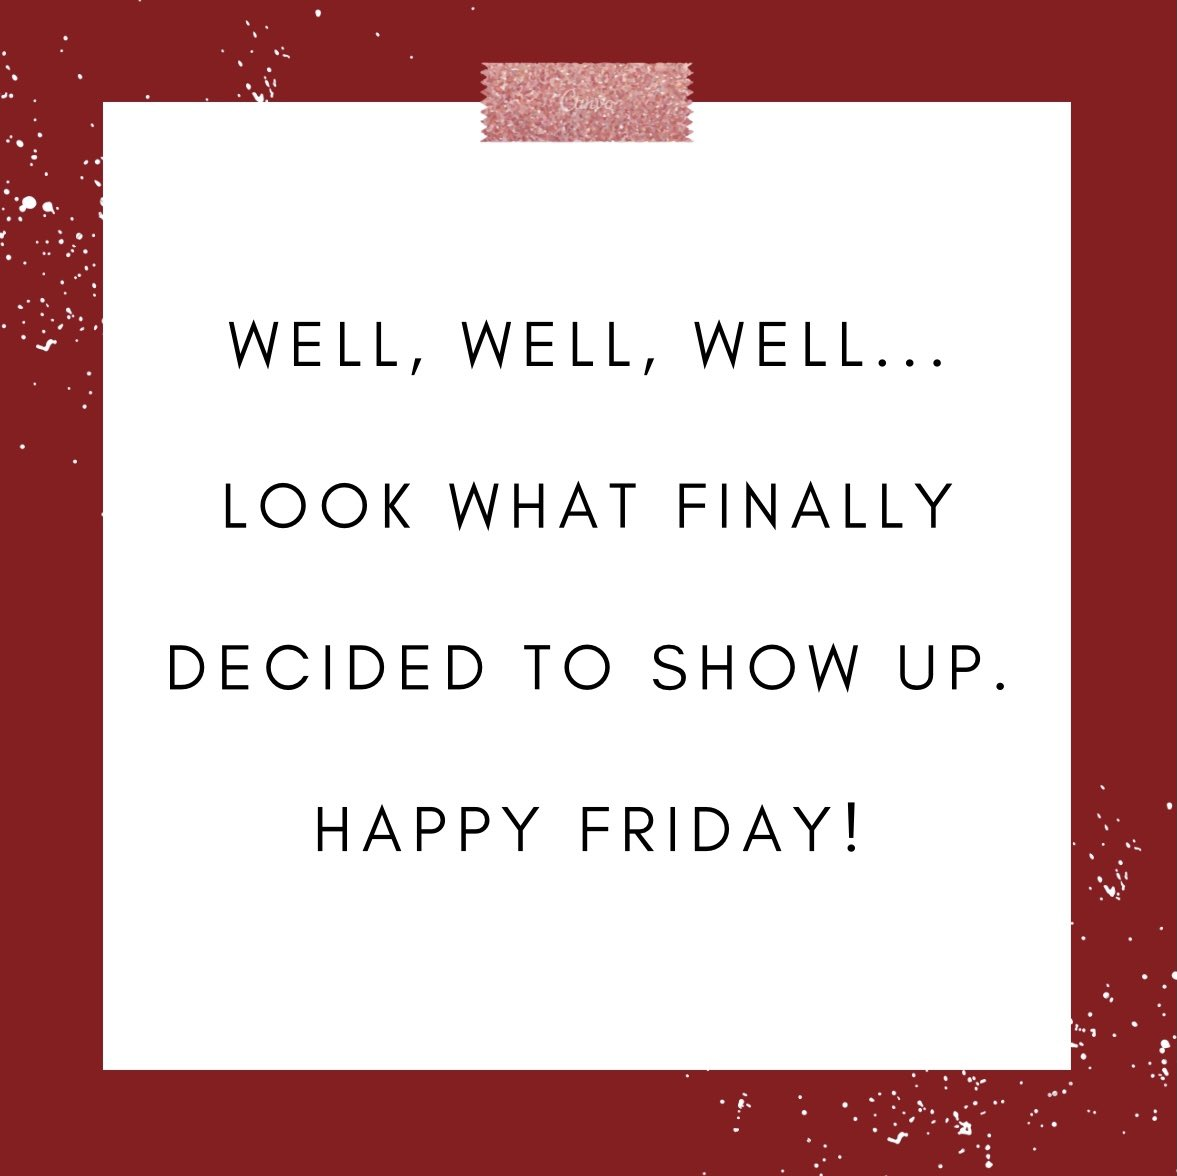 It's FRIDAY! What are your weekend plans? #FridayFeeling #FridayThoughts